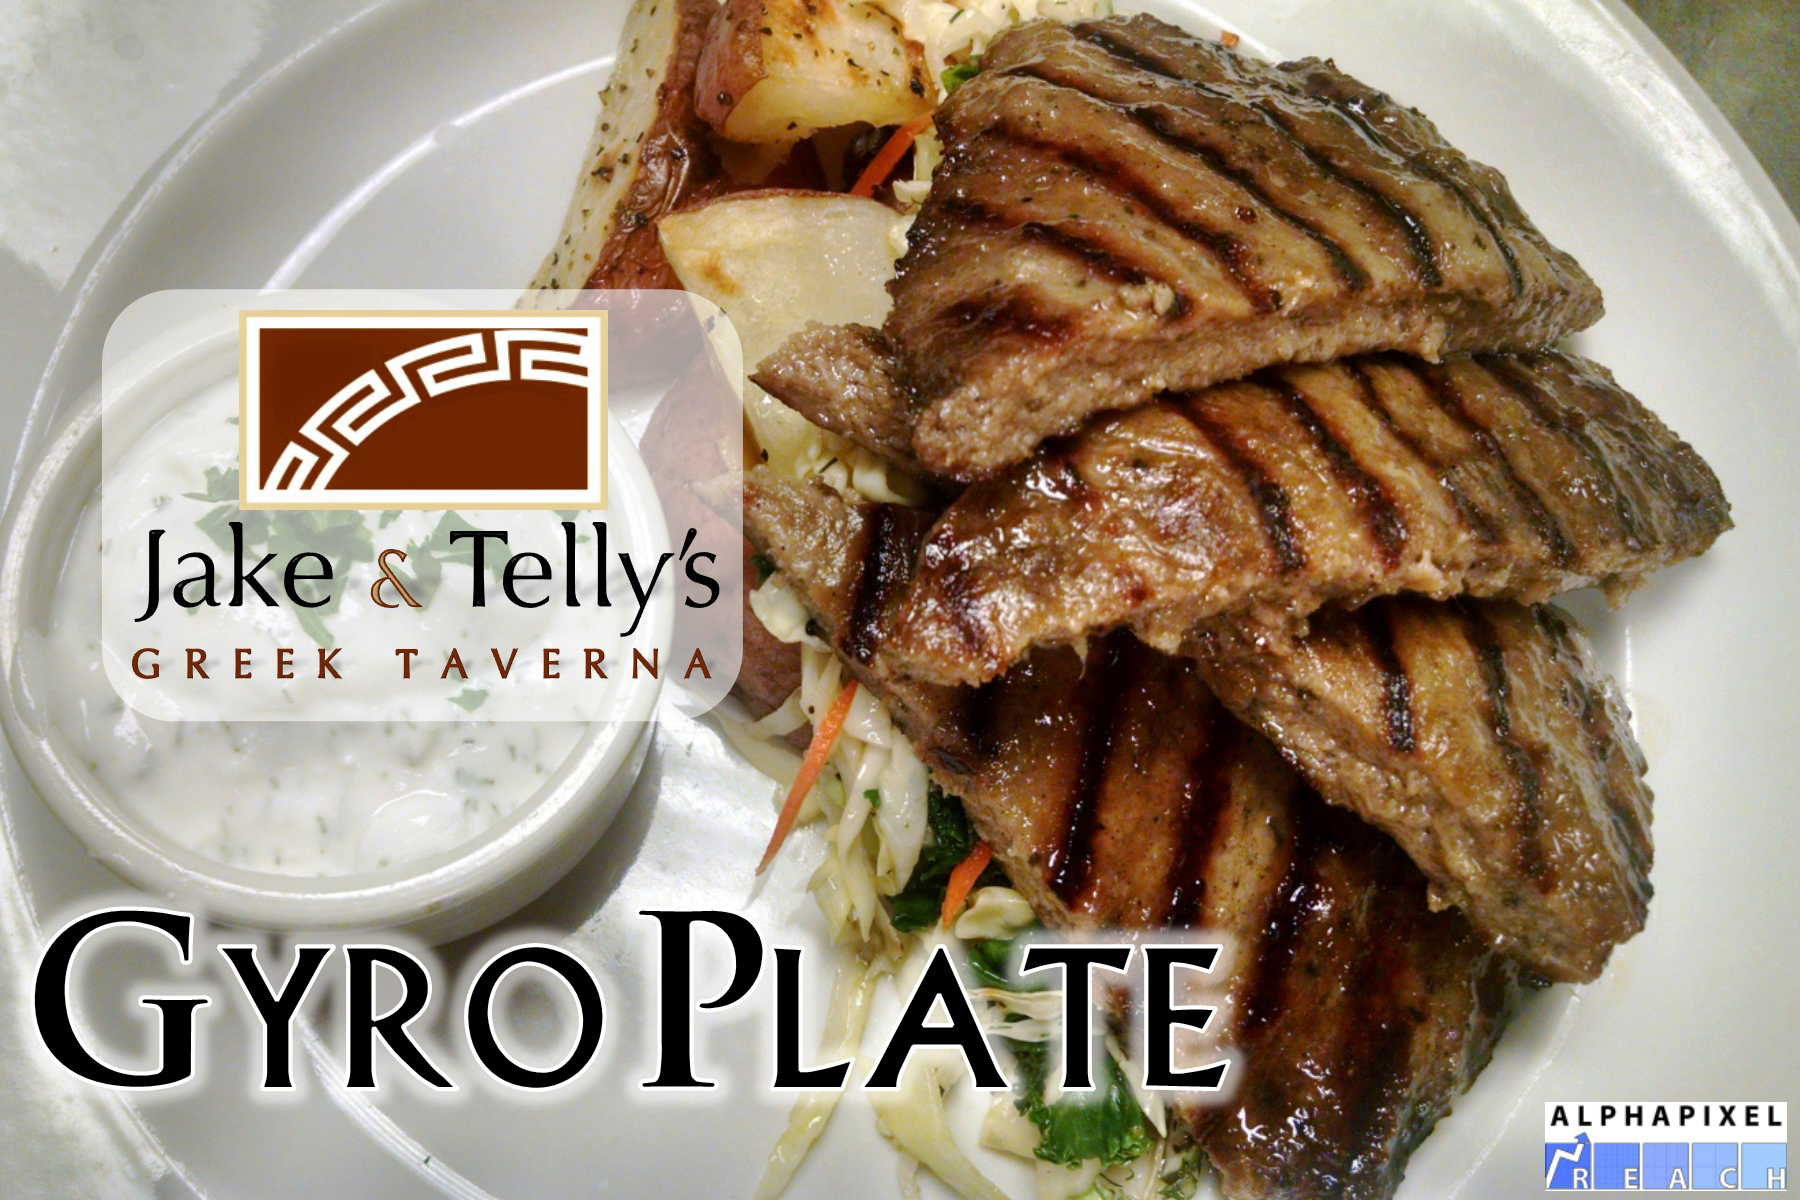 Entrees at Jake and Telly's: Gyro Plate. A close up photo of our Gyro Plate. A succulent blend of specially seasoned lamb and beef, grilled to order. Served with roasted red potatoes, sautéed vegetables and our house-made tzatziki. Jake and Telly's Logo and the AlphaPixel Reach Logo are present.